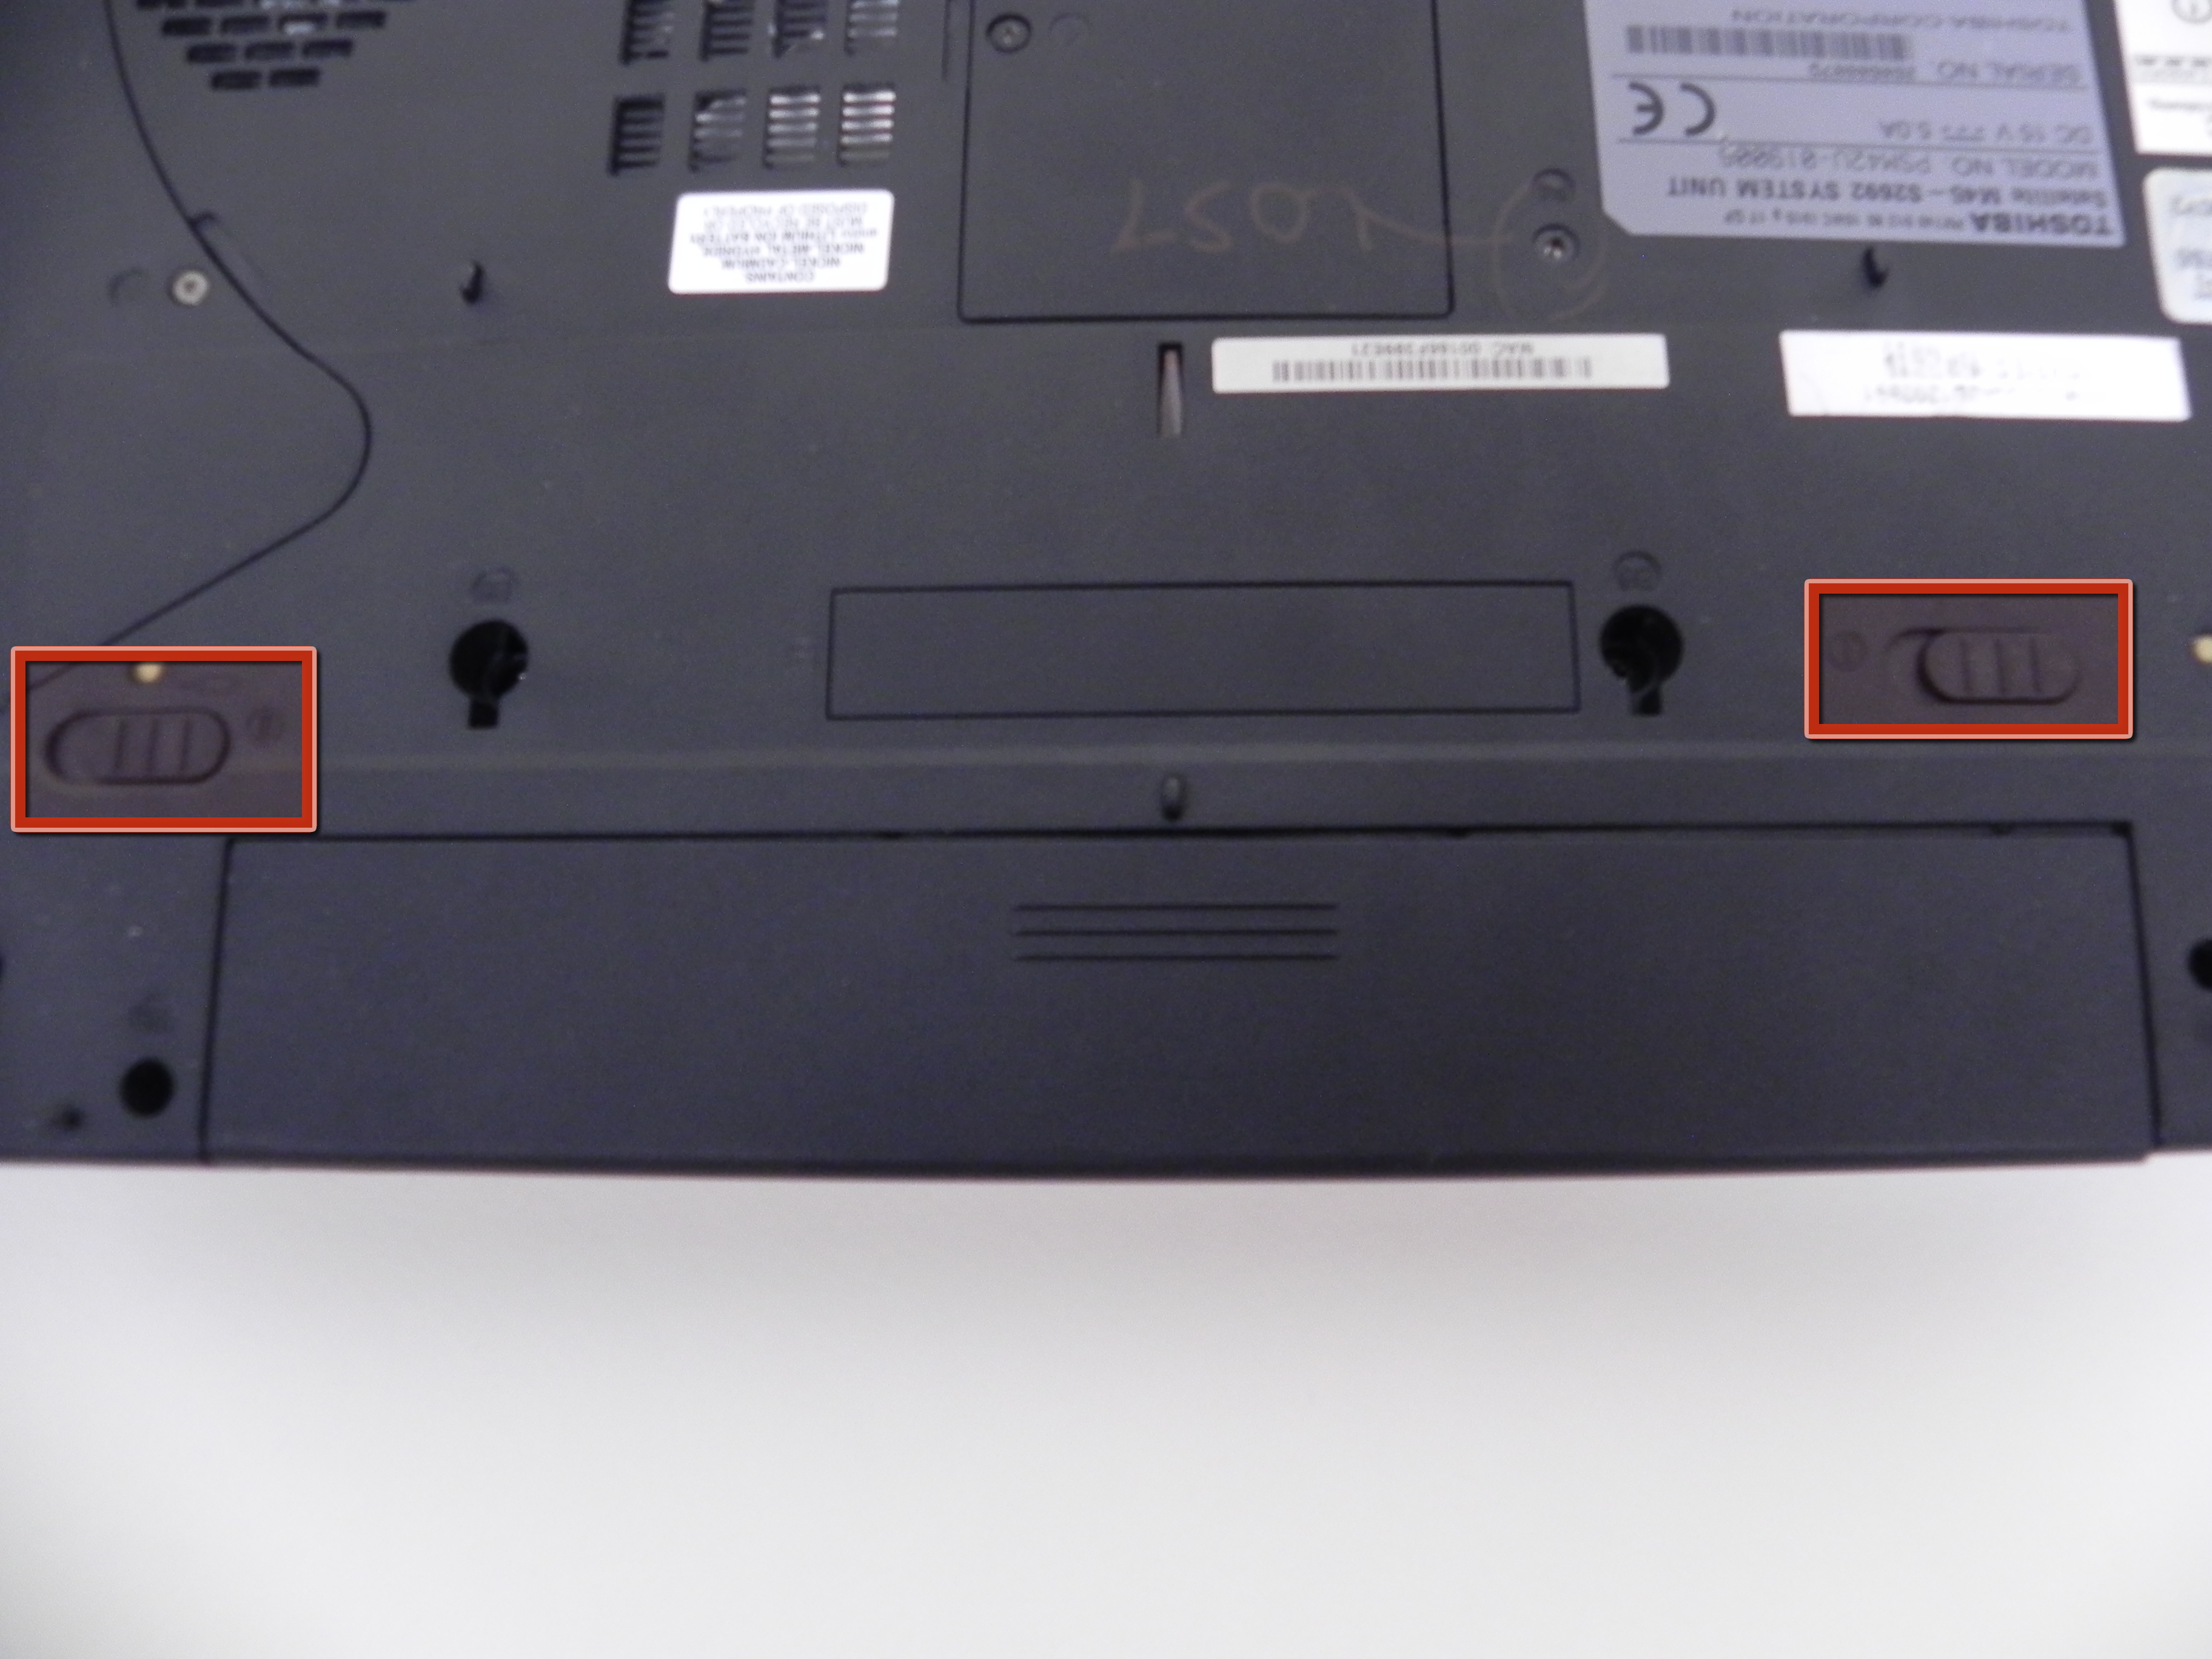 Laury Fvbimv Nsl on Toshiba Satellite Replacement Parts